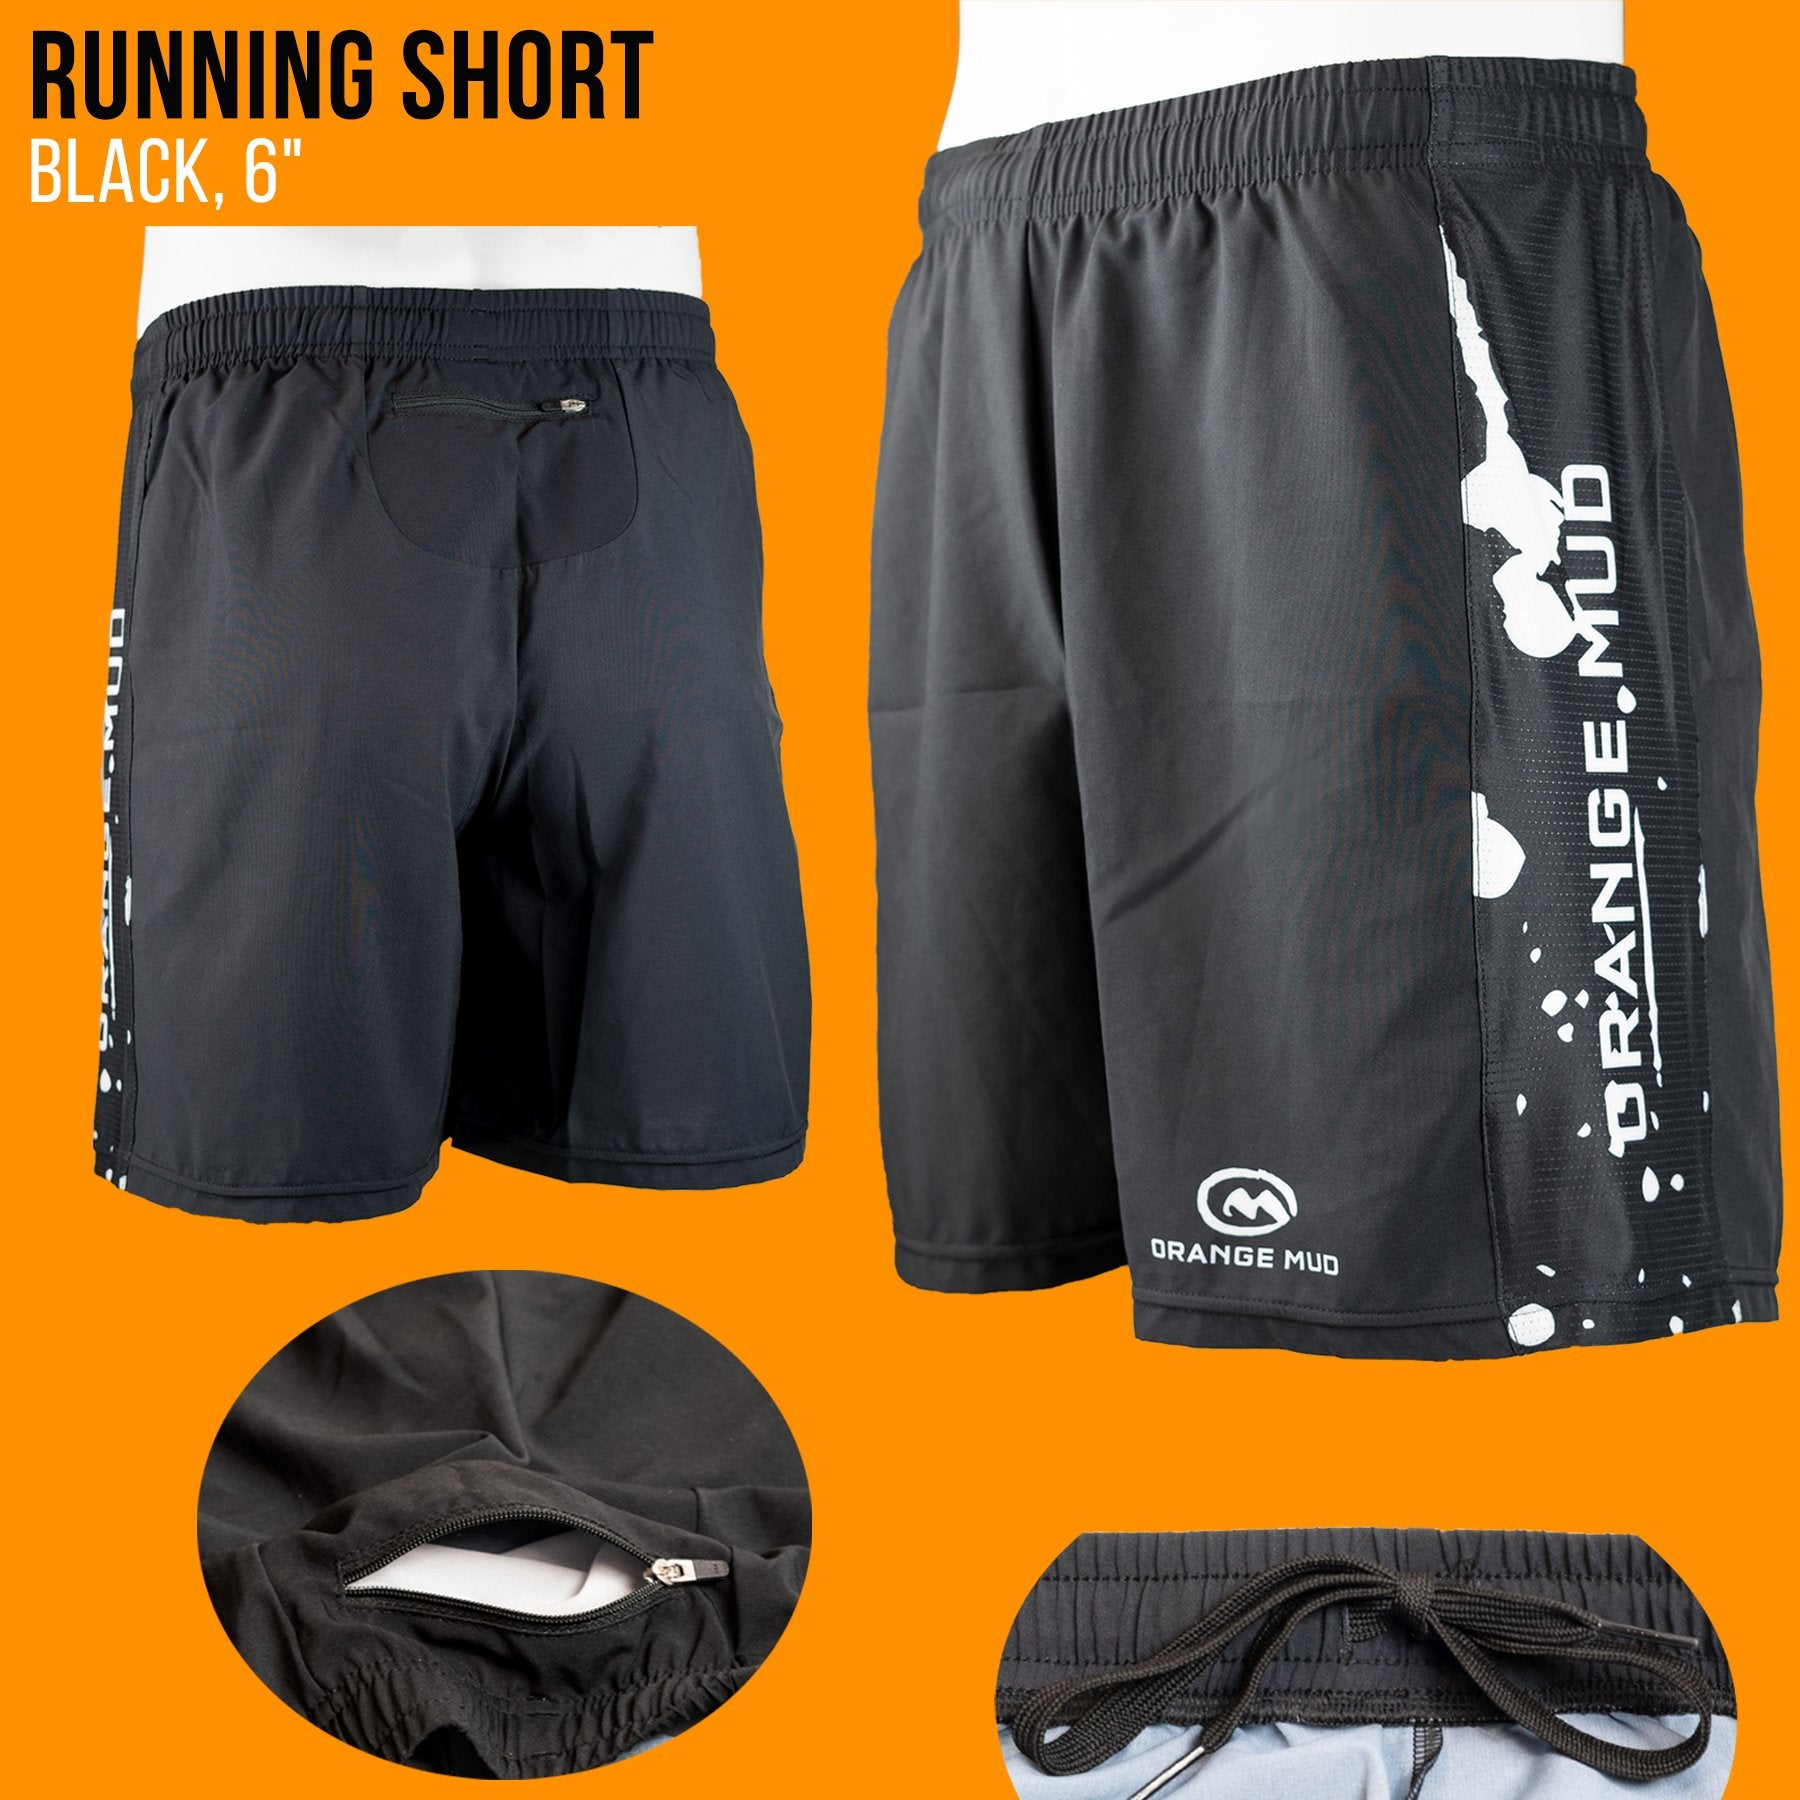 Running Short 3 different length options